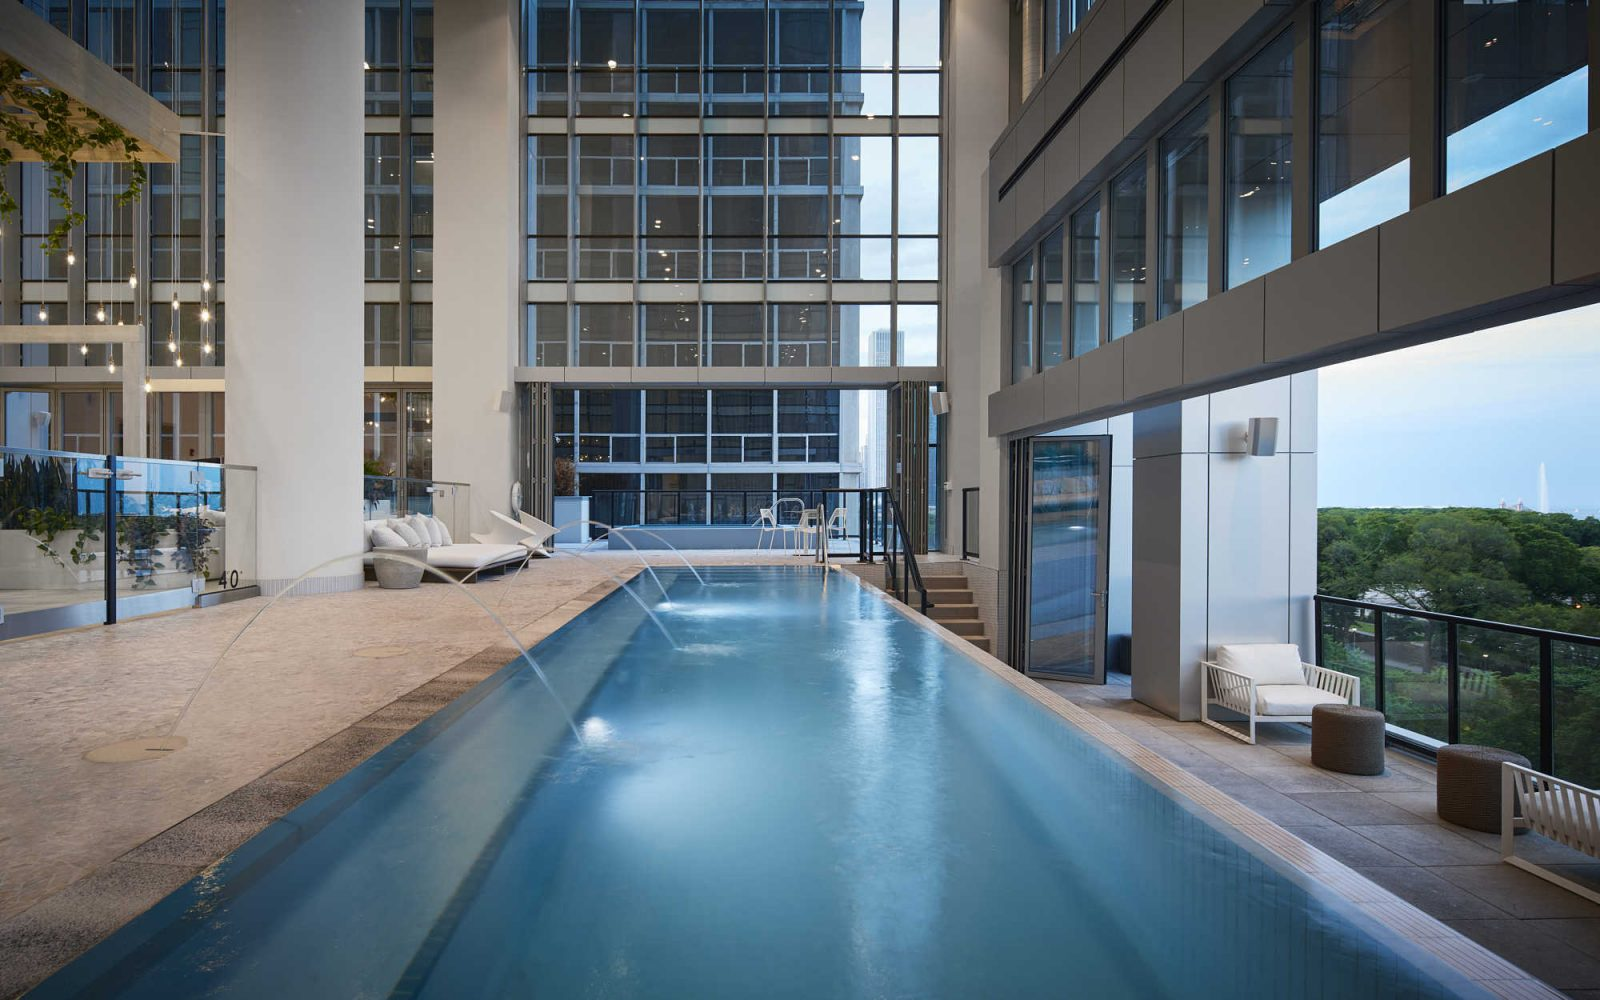 Essex indoor pool with open balcony